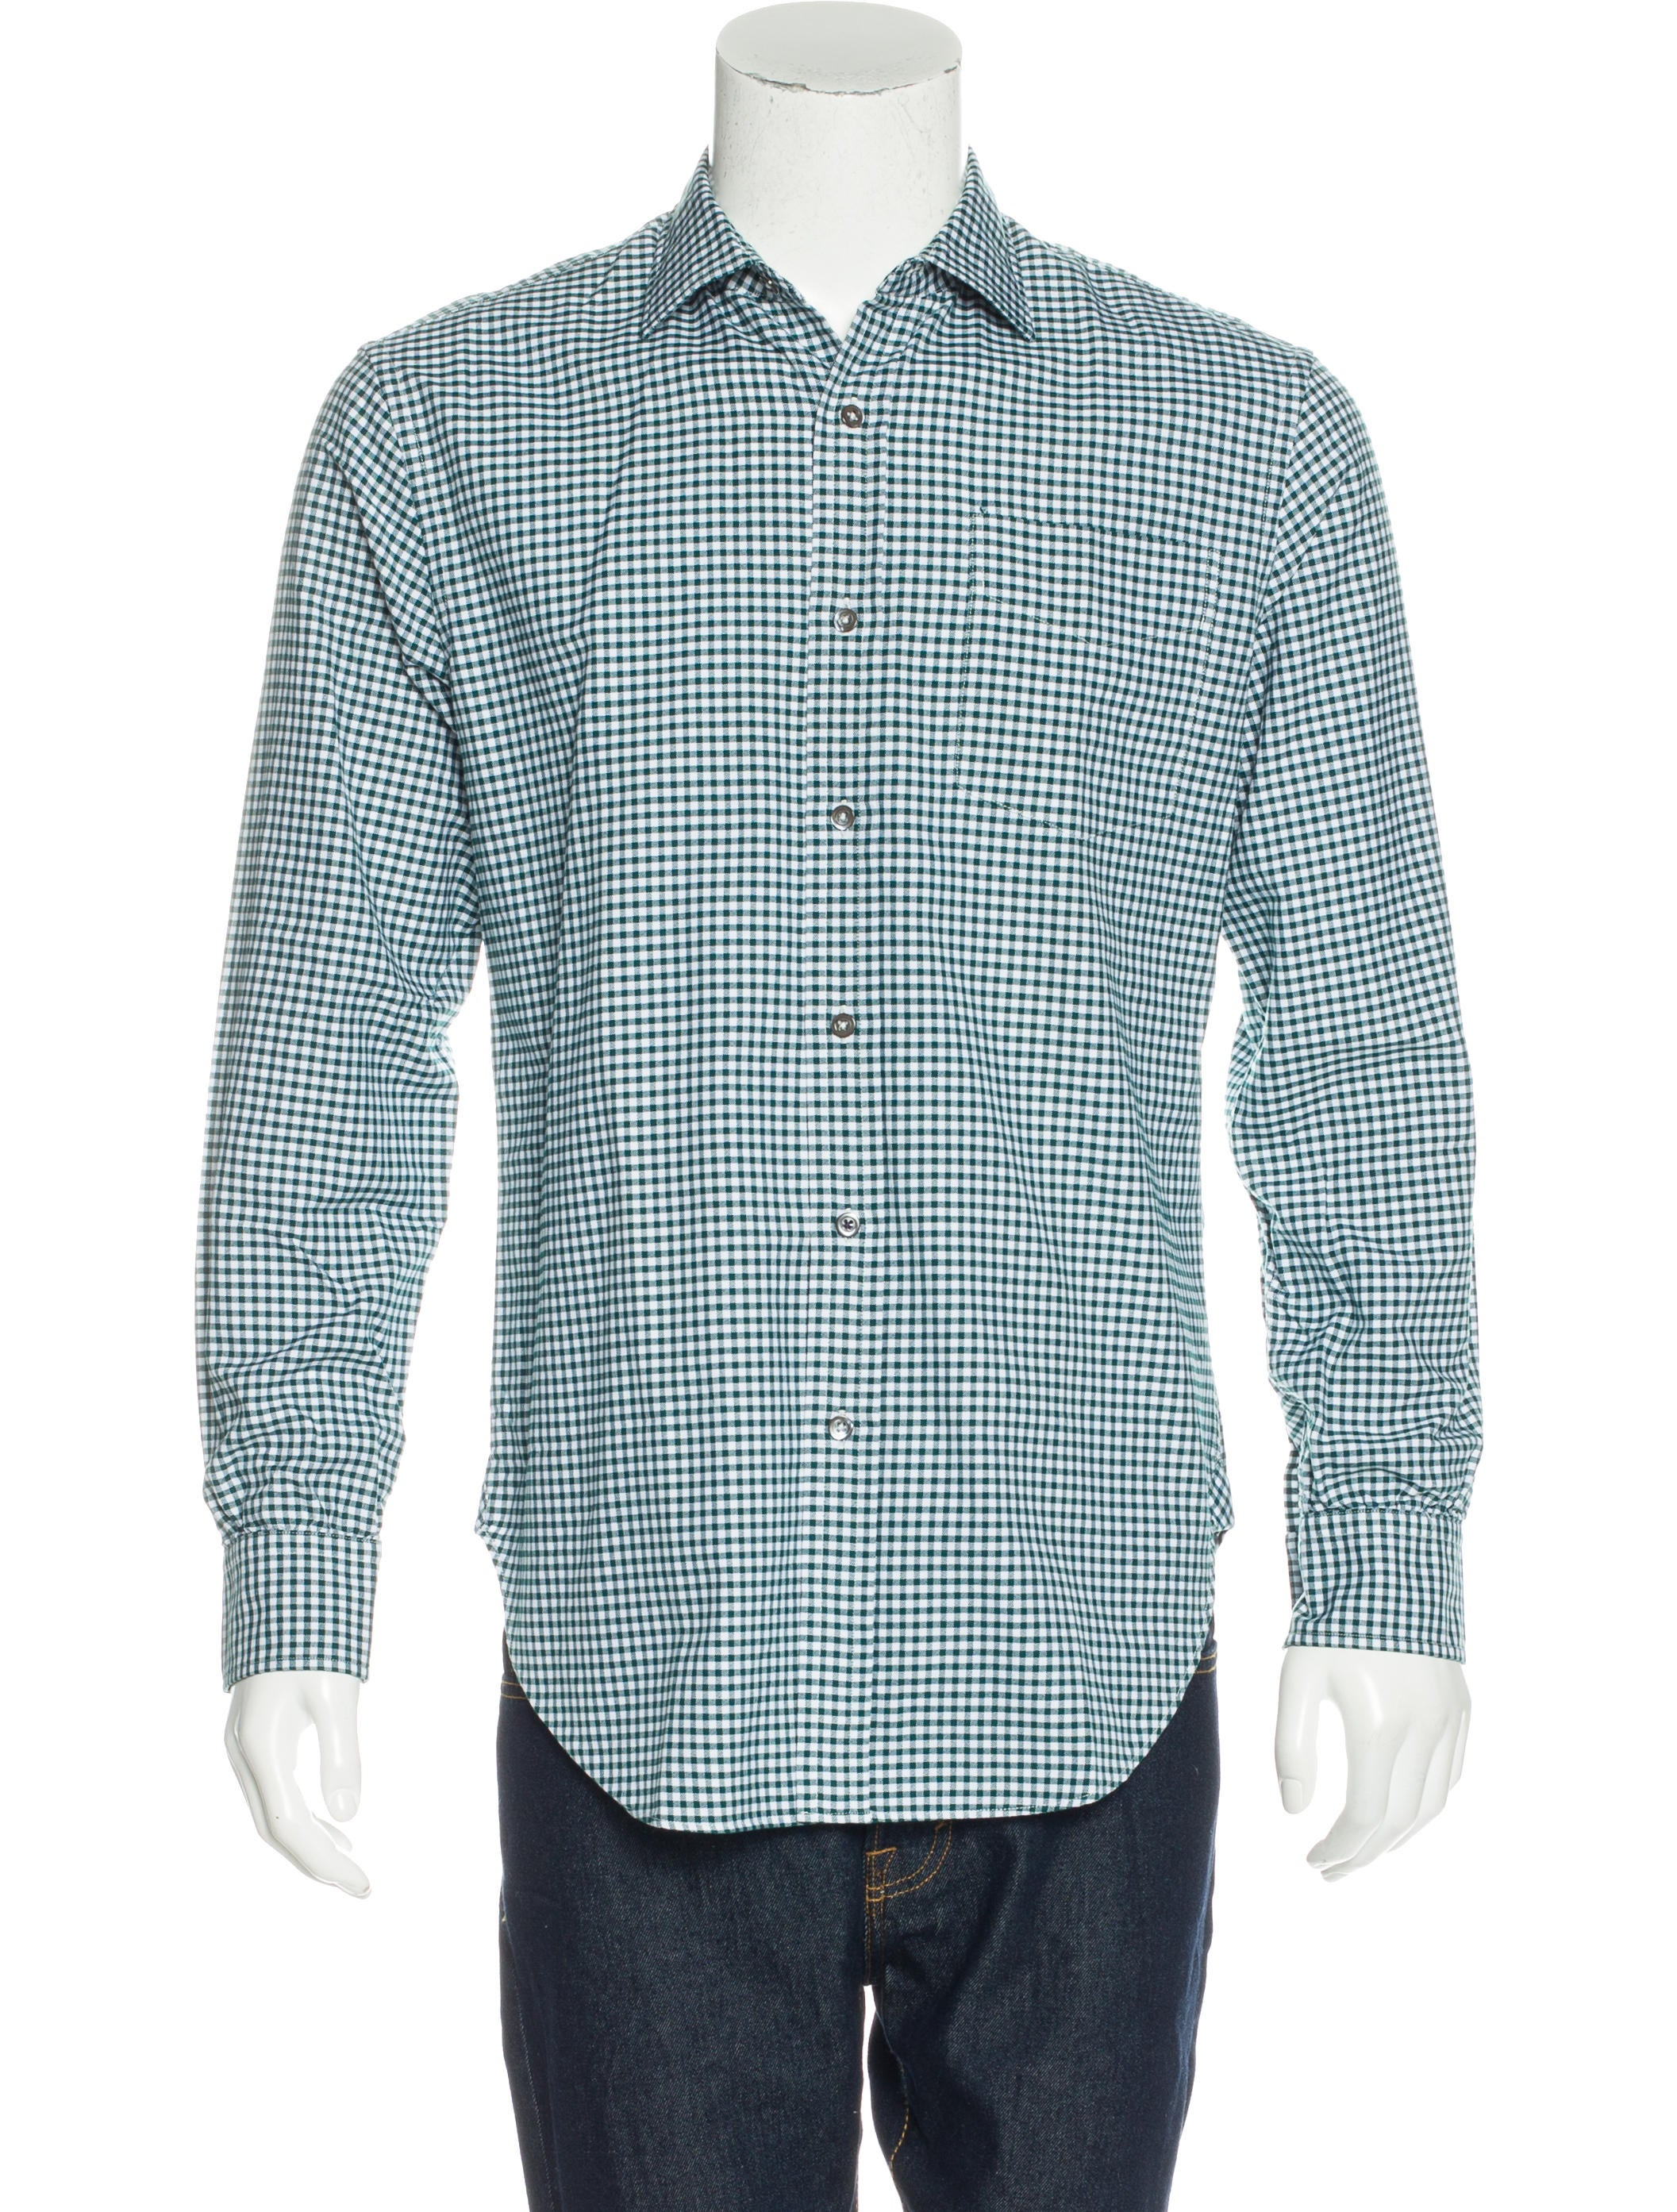 Paul Smith Gingham Woven Shirt Clothing Wps23955 The